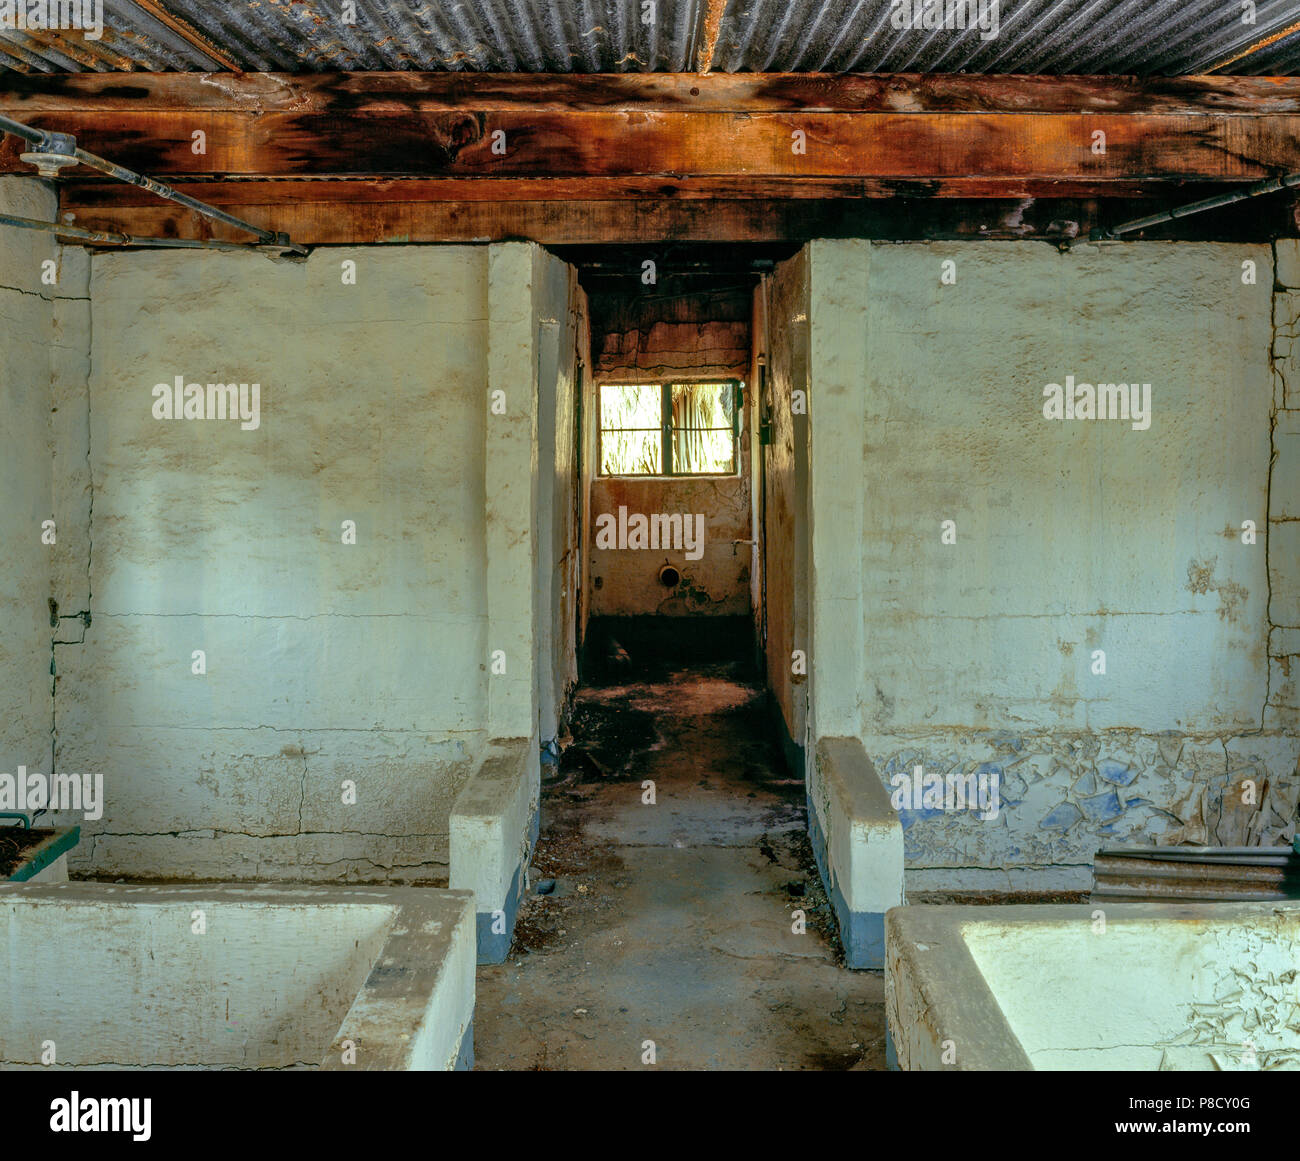 Bath House Ruins, Zzyzx Mineral Springs, Mojave National Preserve CA Stock Photo